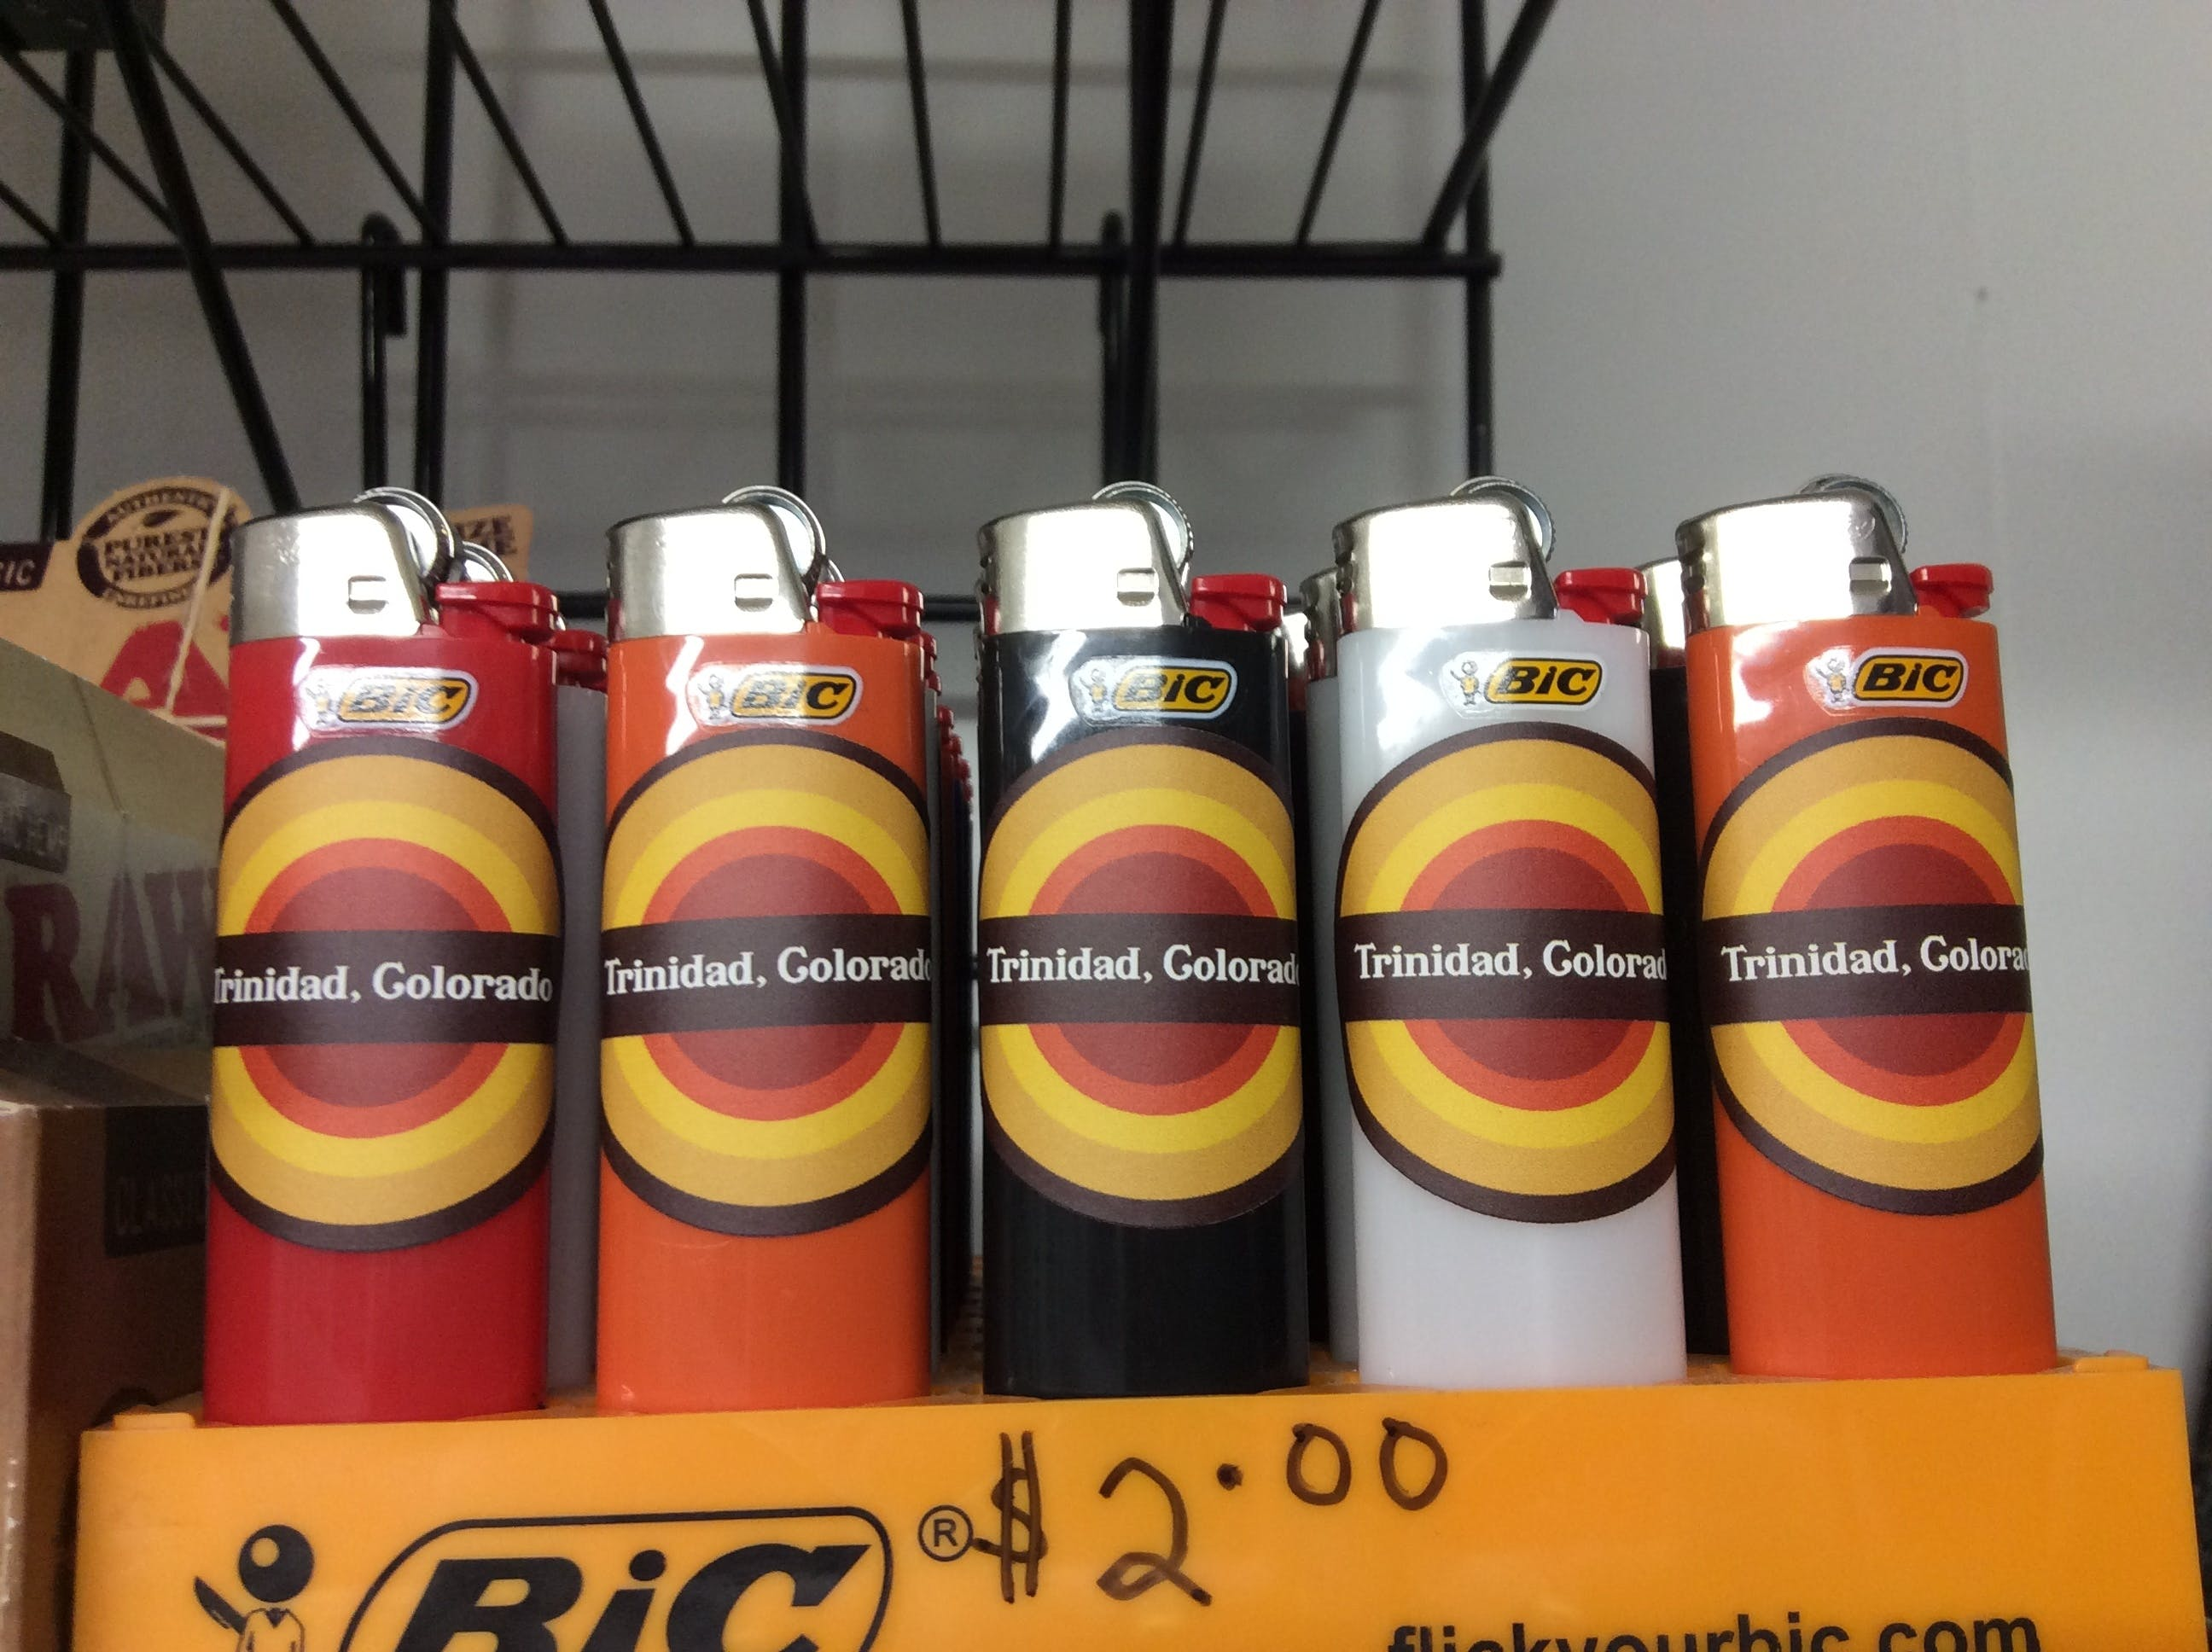 marijuana-dispensaries-pac-house-of-top-shelf-25-cap-in-sylmar-bic-lighter